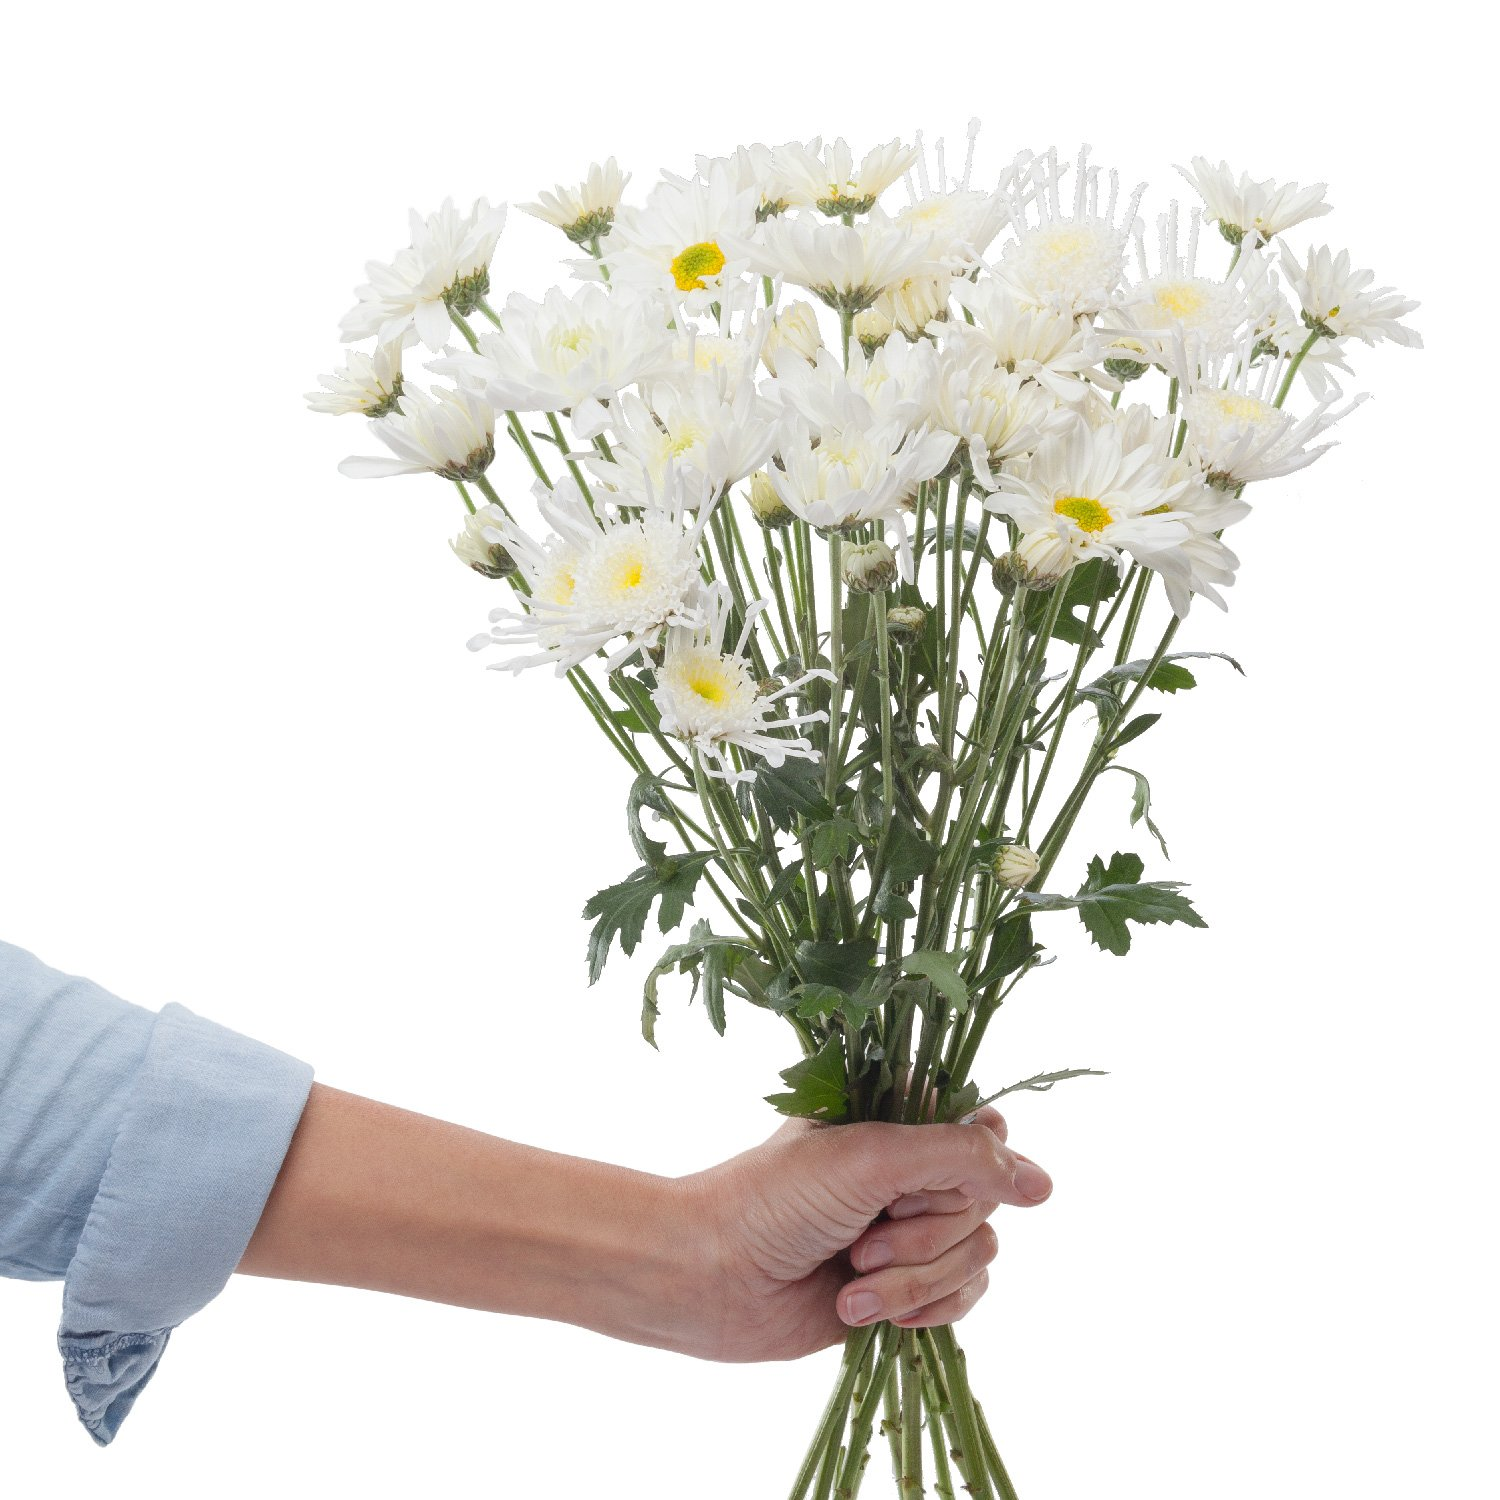 Chrysanthemums | White - 40 Stem Count by Flower Farm Shop